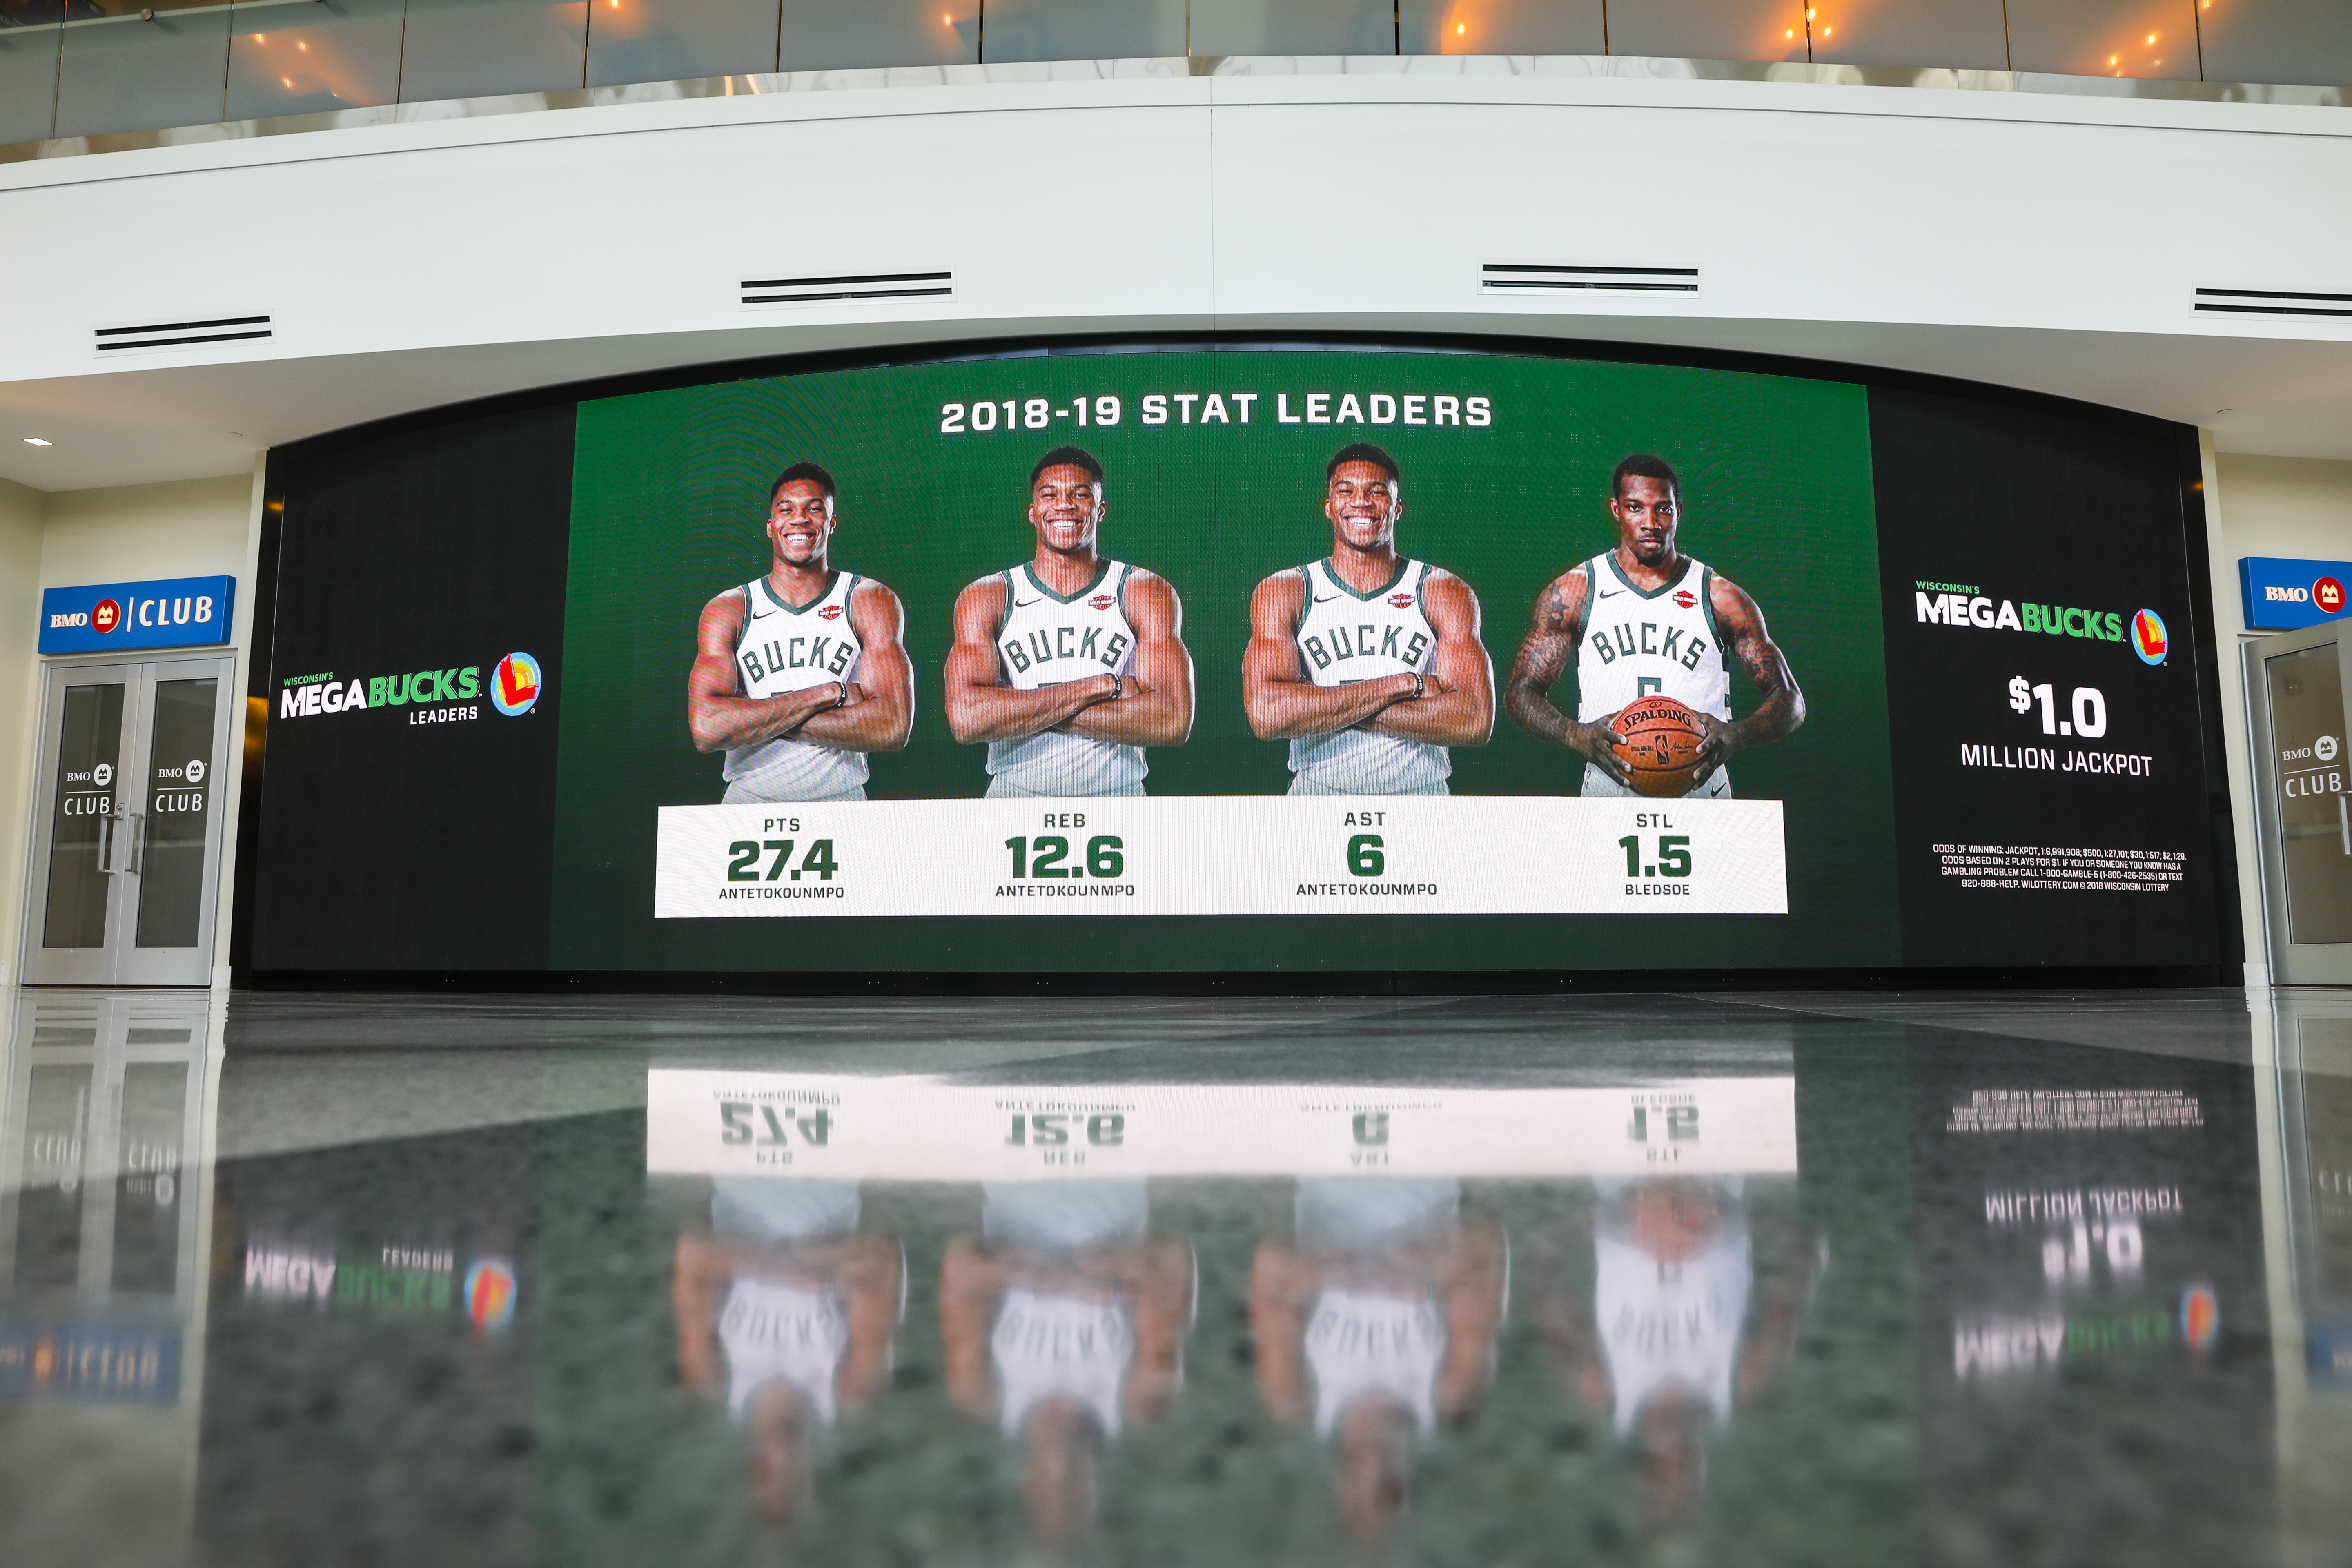 A large digital display in the stadium of a 2018-2019 stats leaderboard featuring Milwaukee Bucks players Giannis Antetokounmpo and Eric Bledsoe. The display advertises the Wisconsin Lottery Megabucks lotto game jackpot.